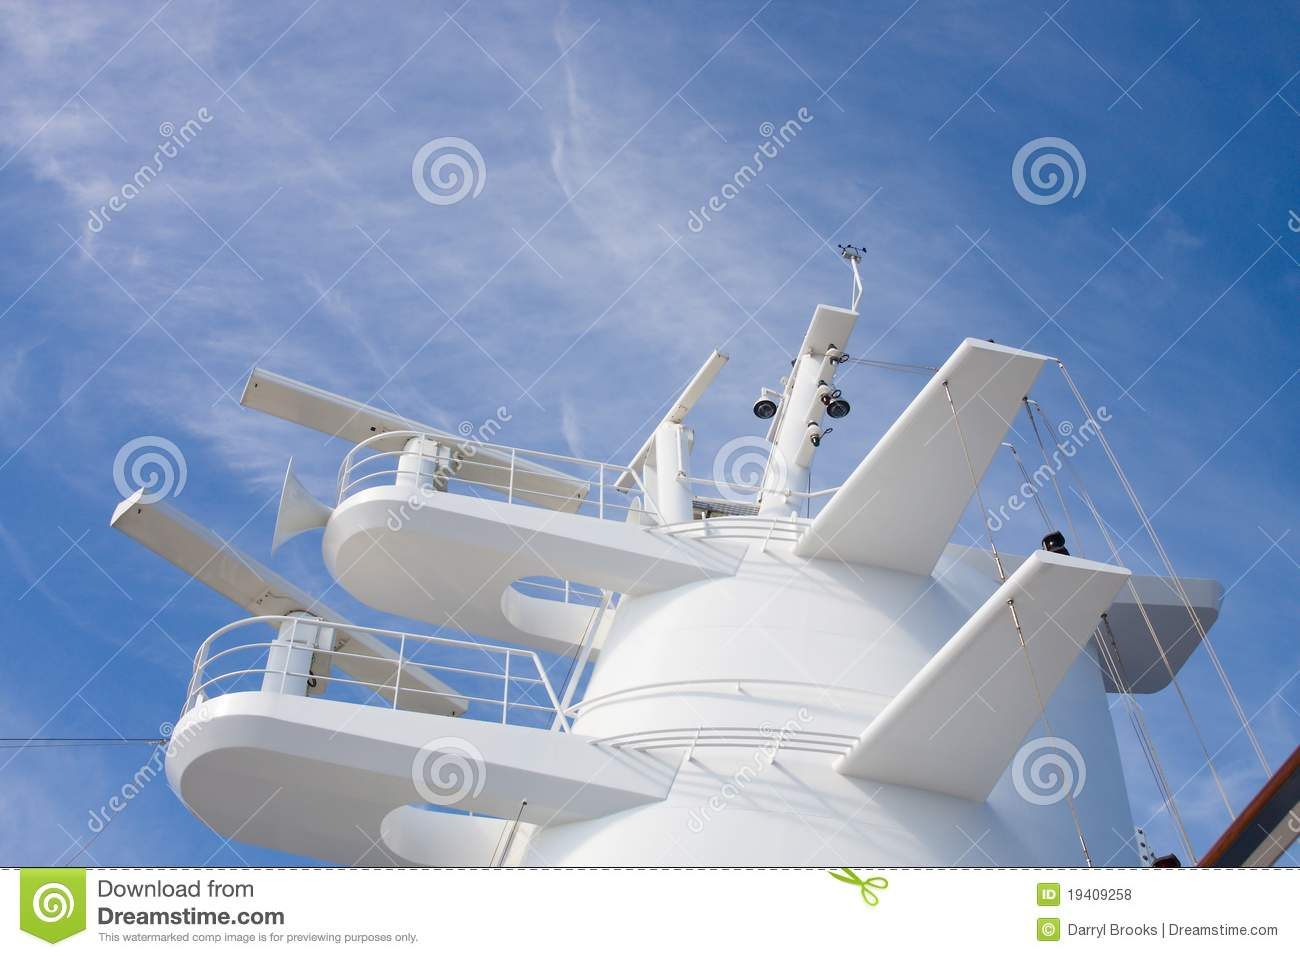 White Radar Tower On A Cruise Ship Stock Photo Image Of Sonar - Cruise ship trackers